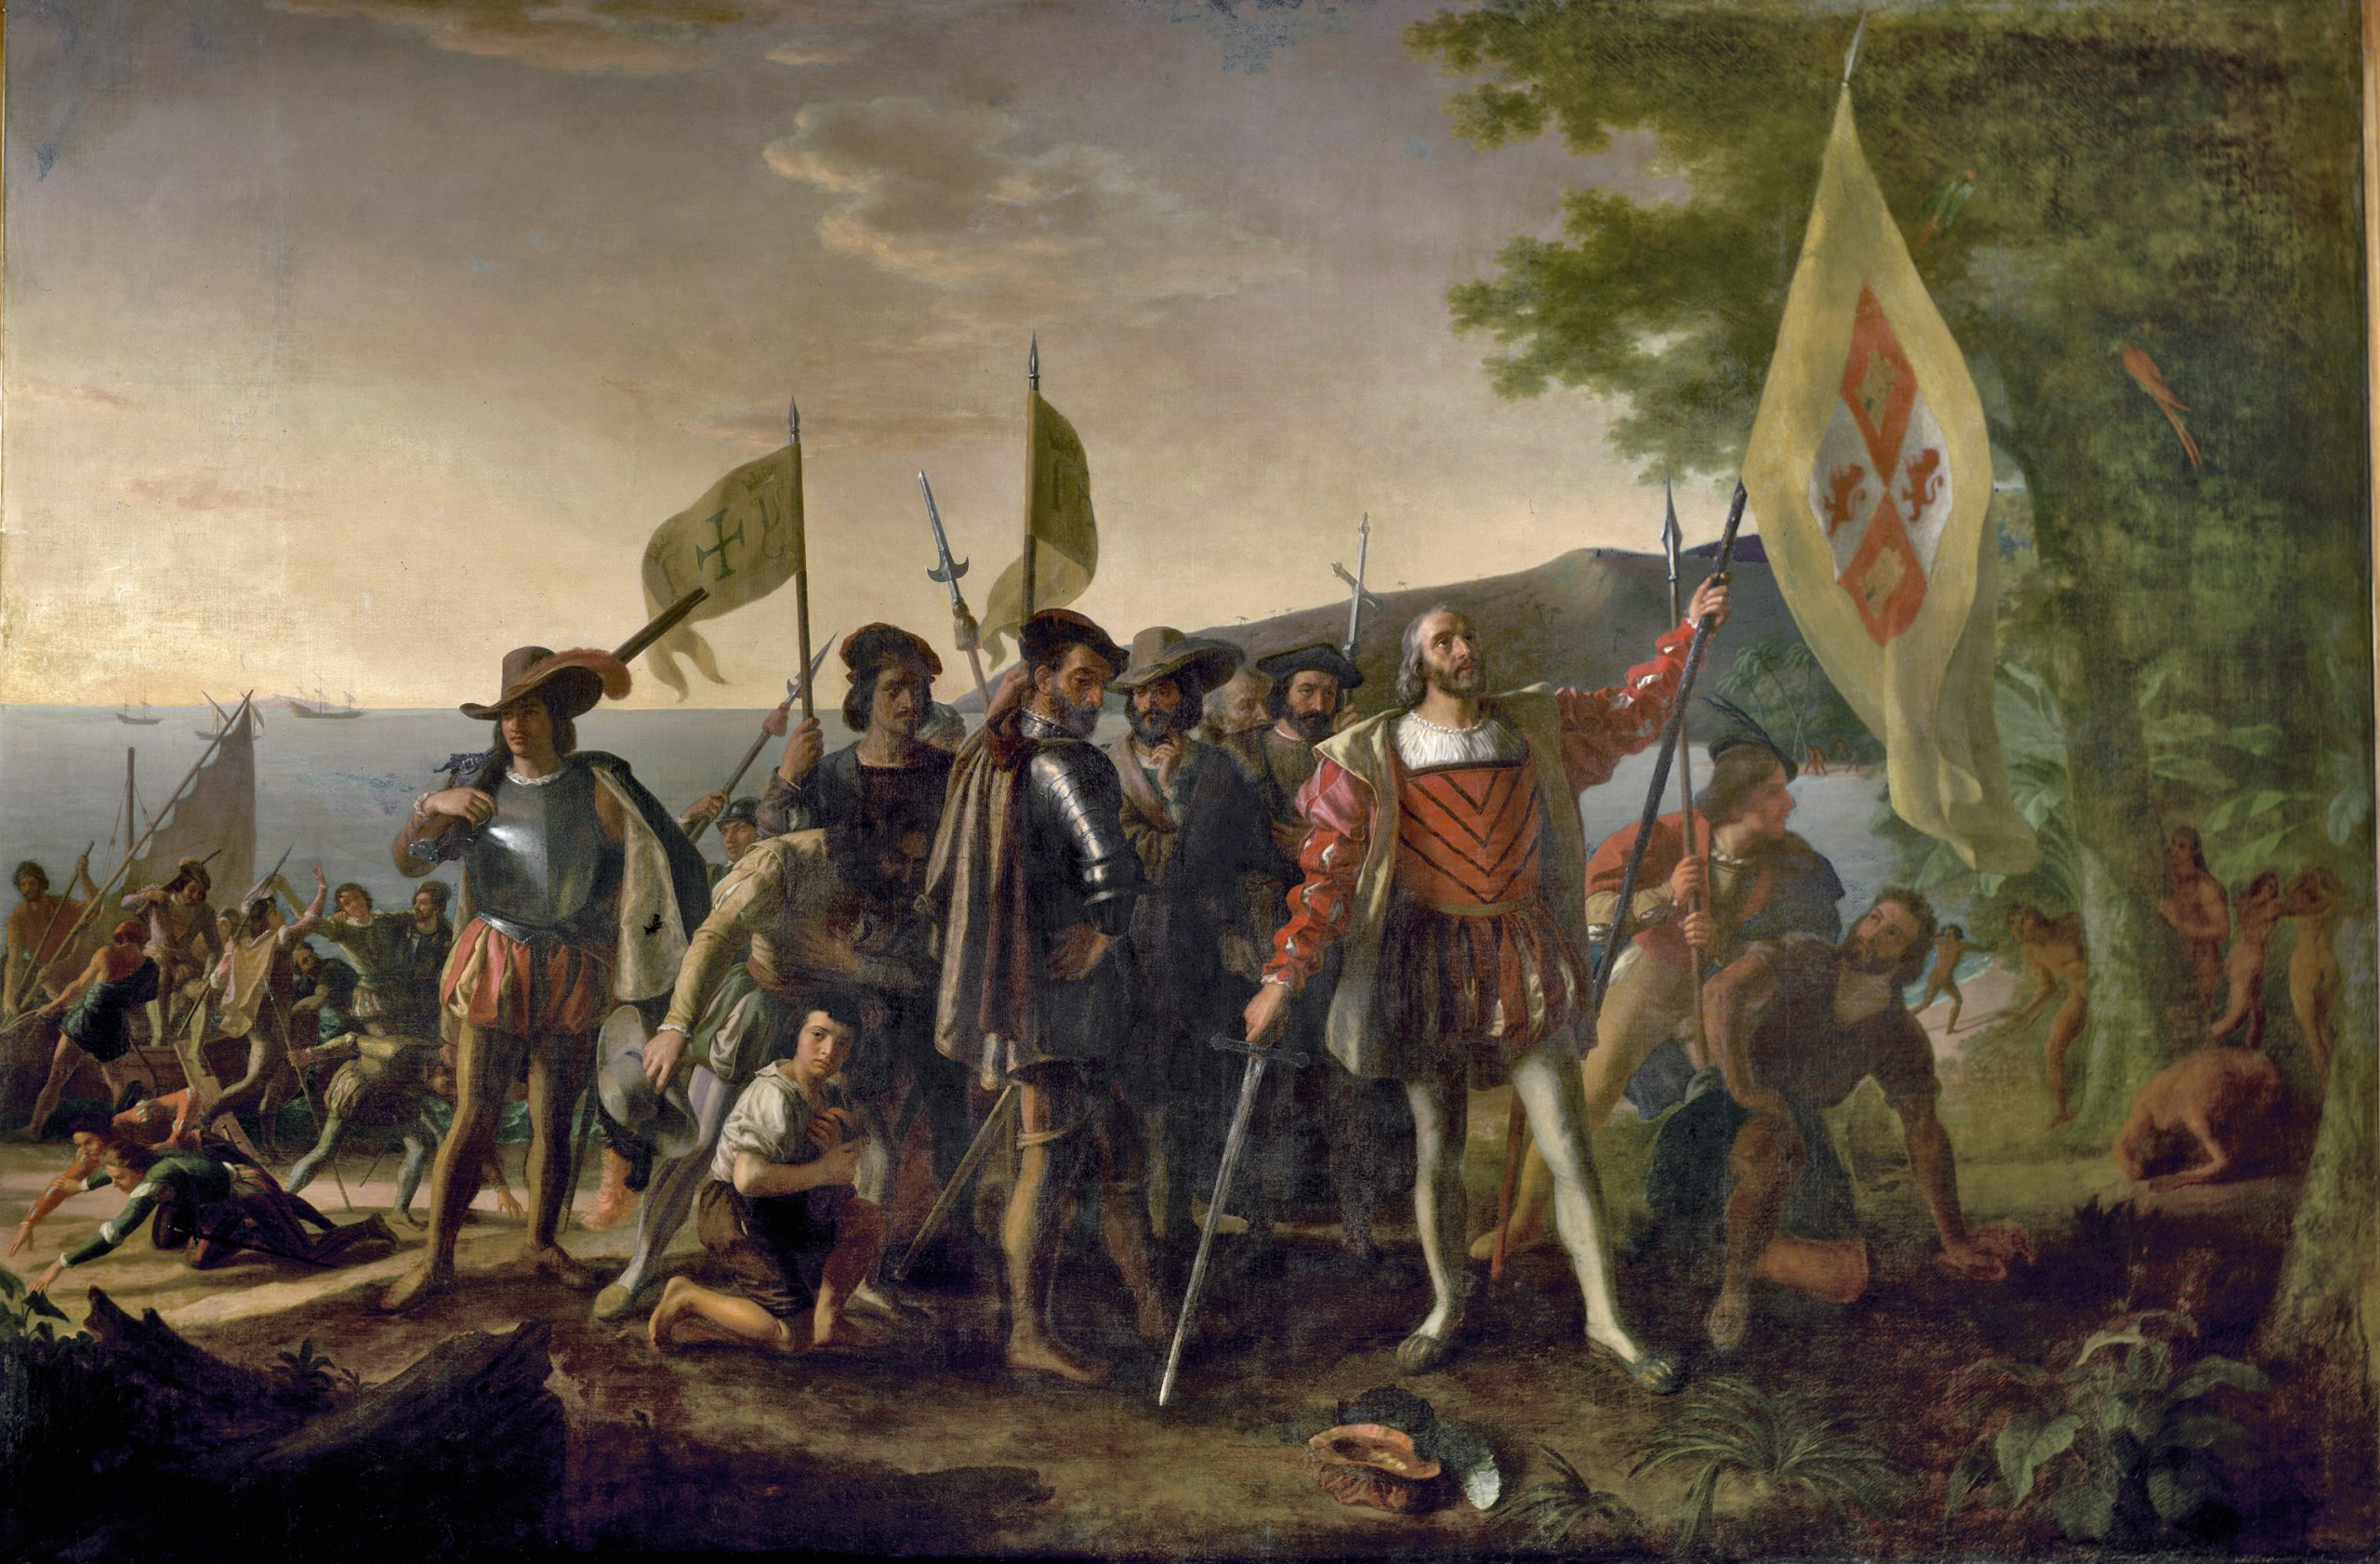 Landing of Columbus, 1846, John Vanderlyn (1775–1852), oil on canvas, 12'H x 18'W, Placed in the U.S. Capitol Rotunda 1847